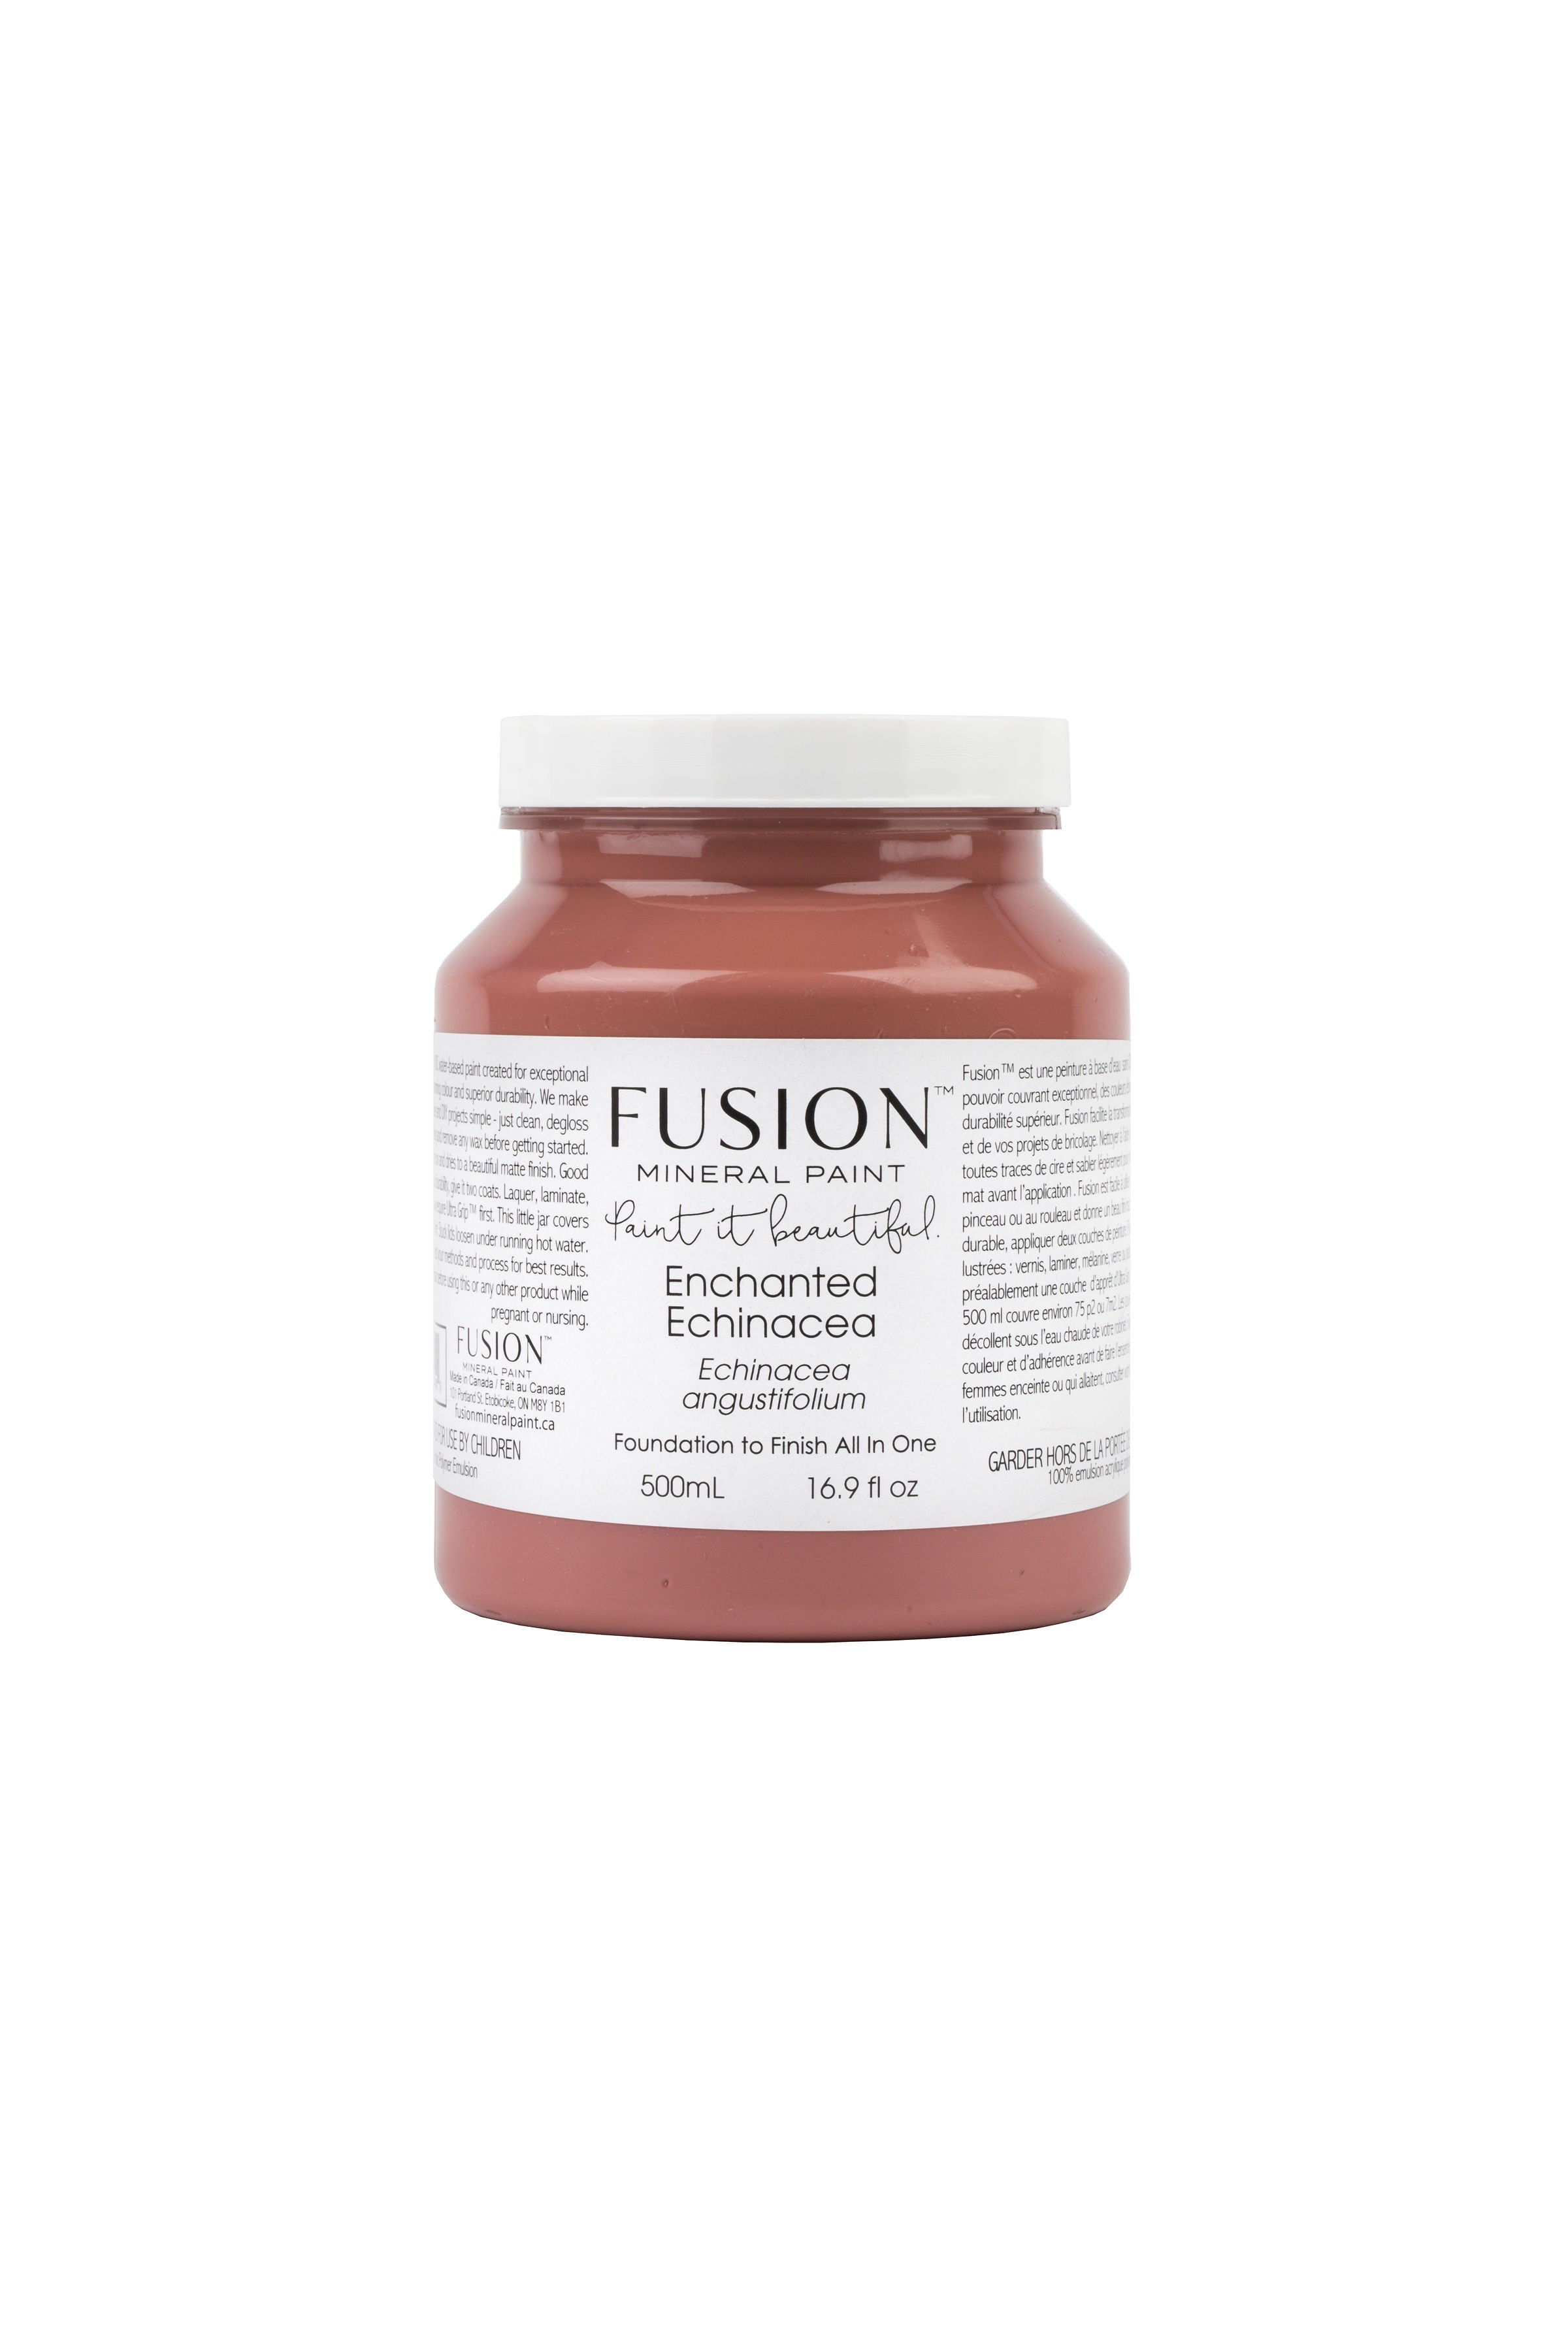 Enchanted Echinacea-Fusion-Mineral Paint